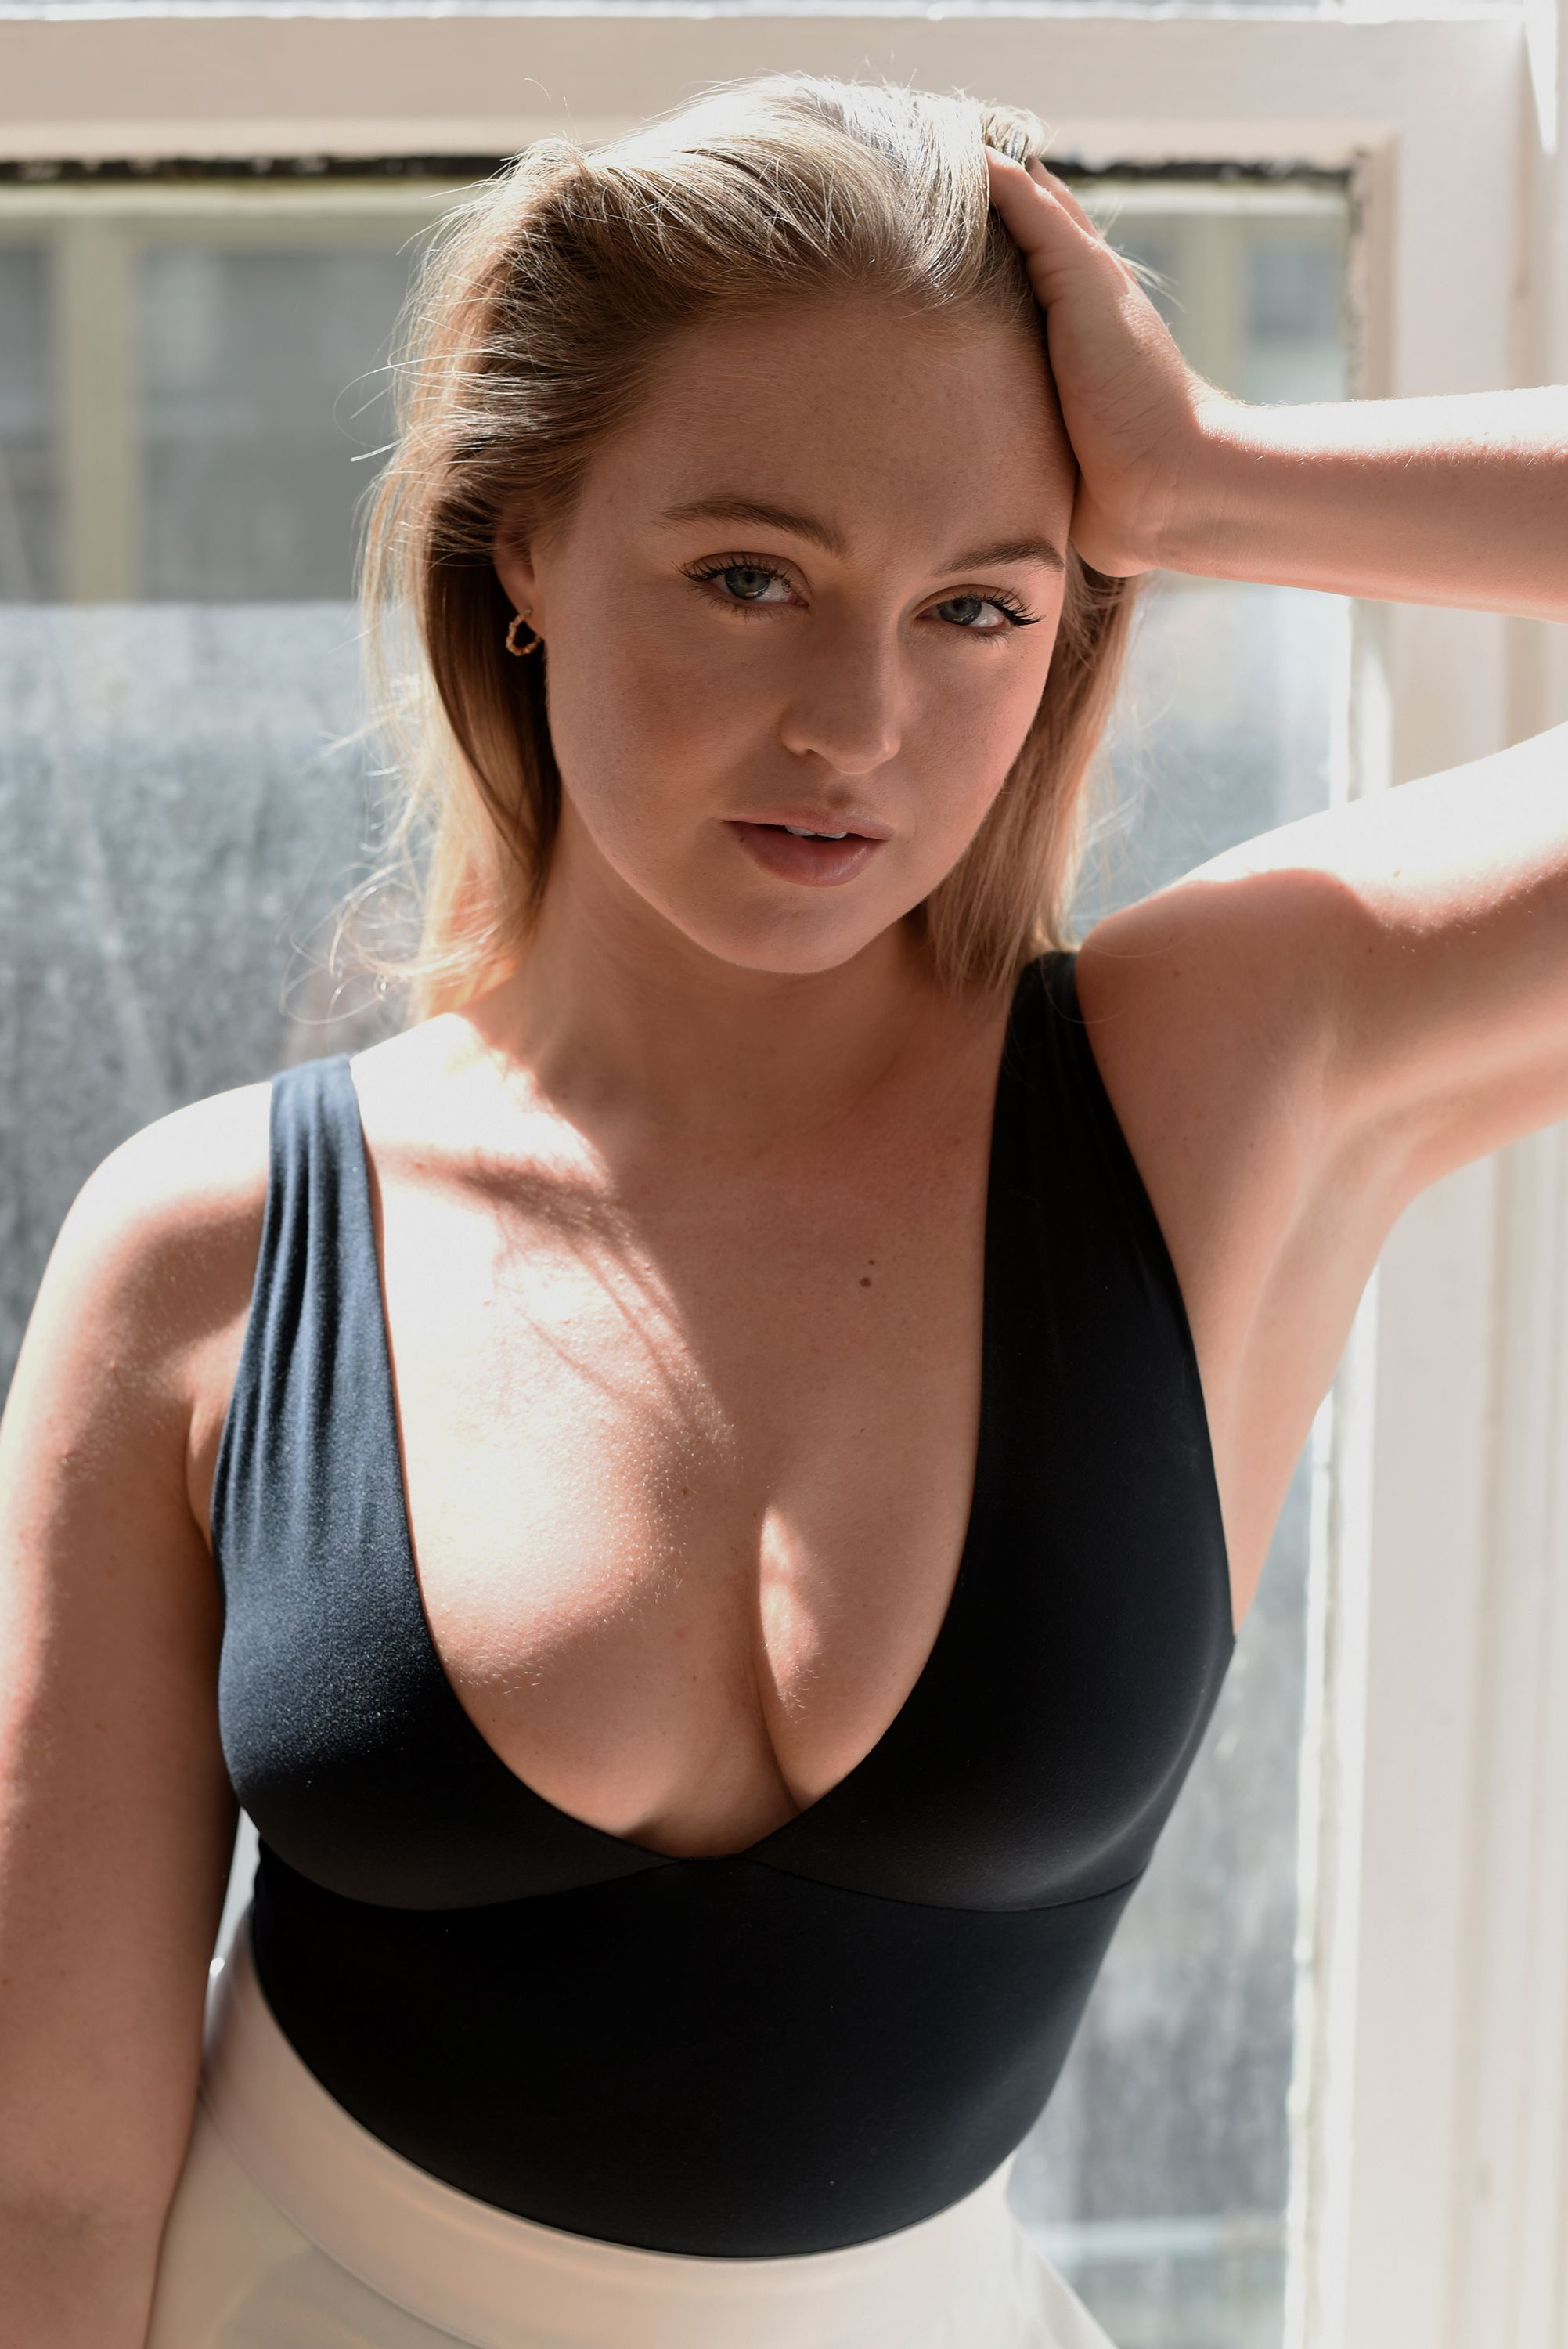 Images Iskra Lawrence nude (63 photo), Ass, Sideboobs, Instagram, in bikini 2019